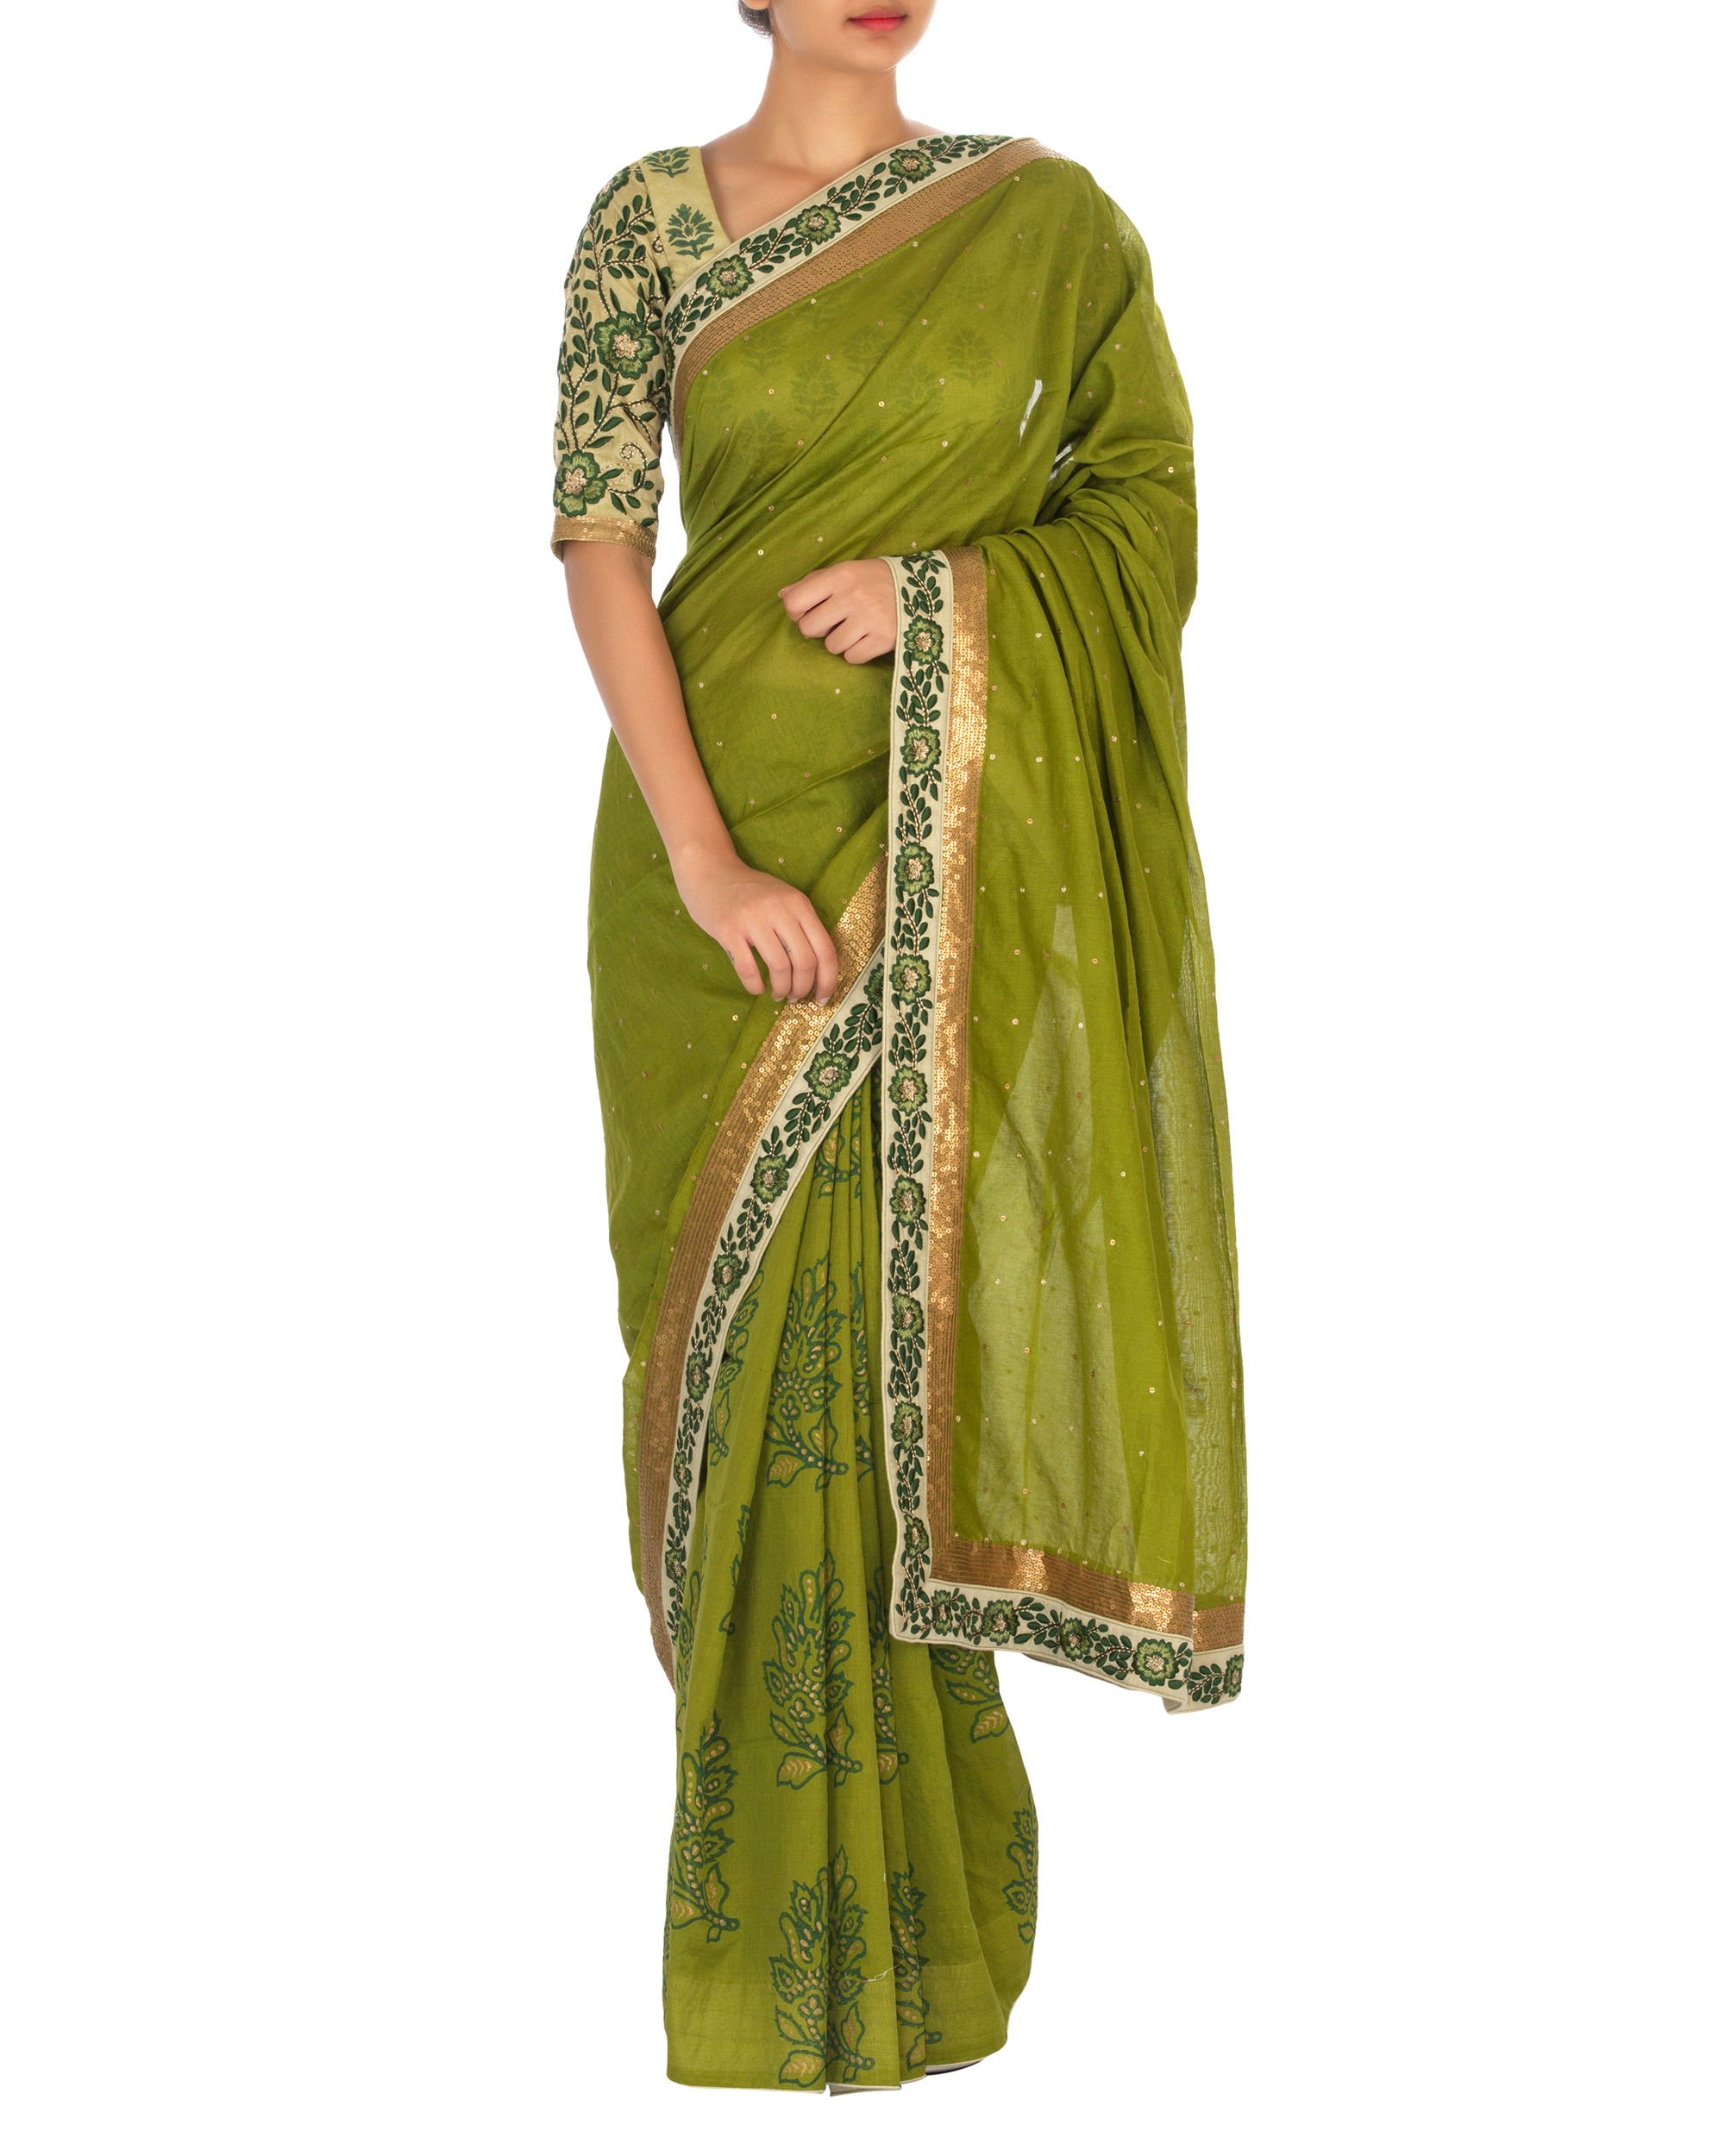 Green chanderi sari with embellished blouse